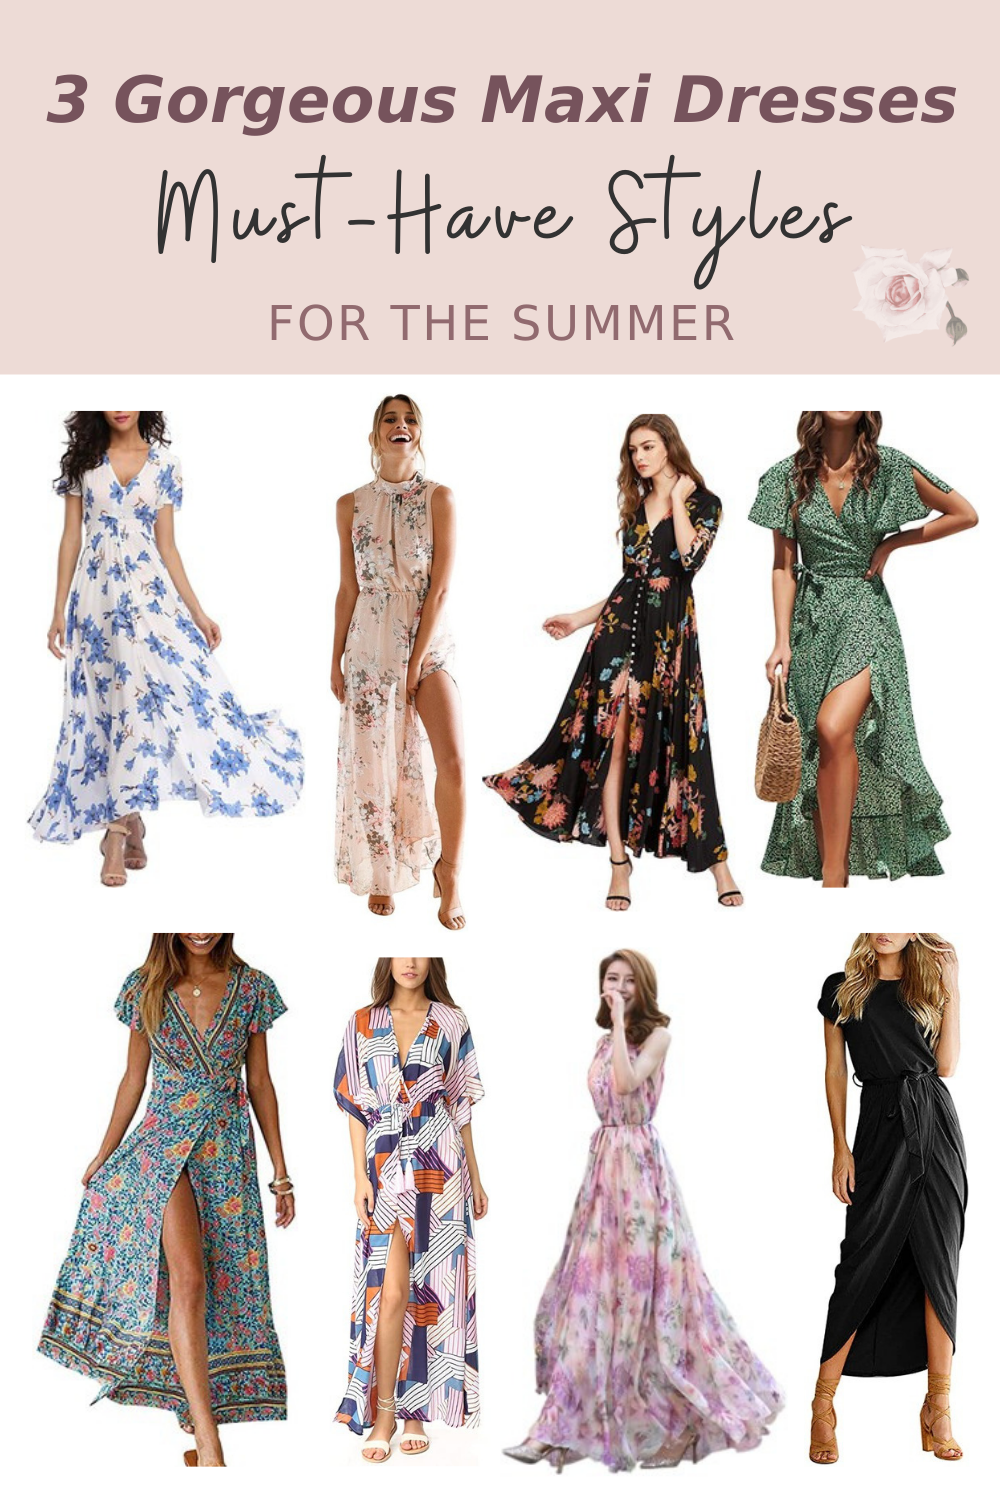 3 Gorgeous Maxi Dress Styles You Ll Want Wear This Summer Gorgeous Maxi Dresses Style Maxi Dress Summer Fashion Outfits [ 1500 x 1000 Pixel ]